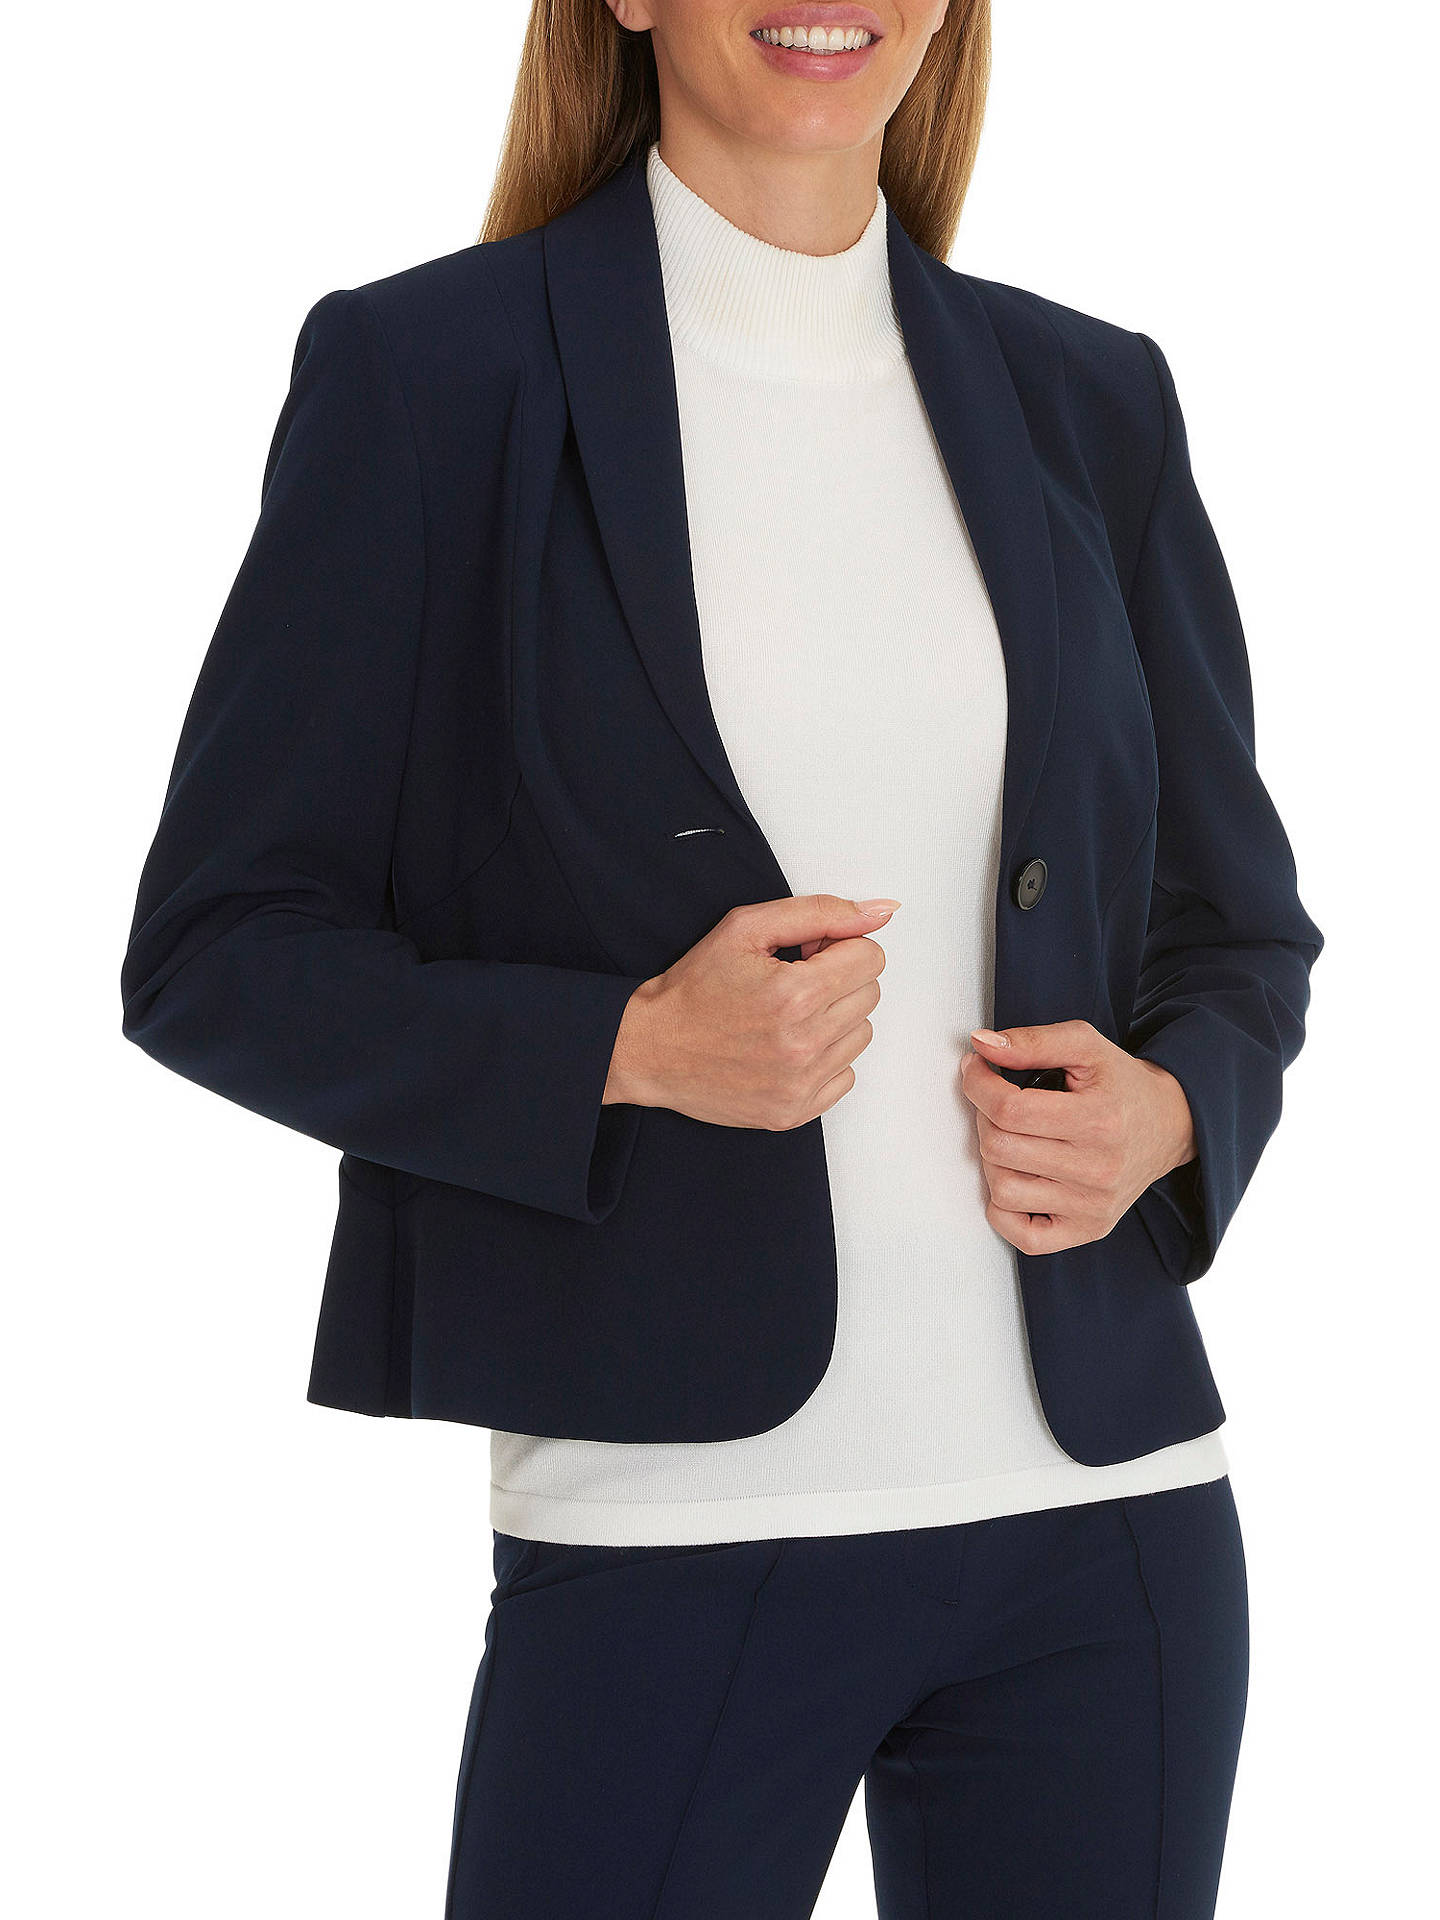 BuyBetty Barclay Tailored Short Blazer, Dark Sky, 8 Online at johnlewis.com